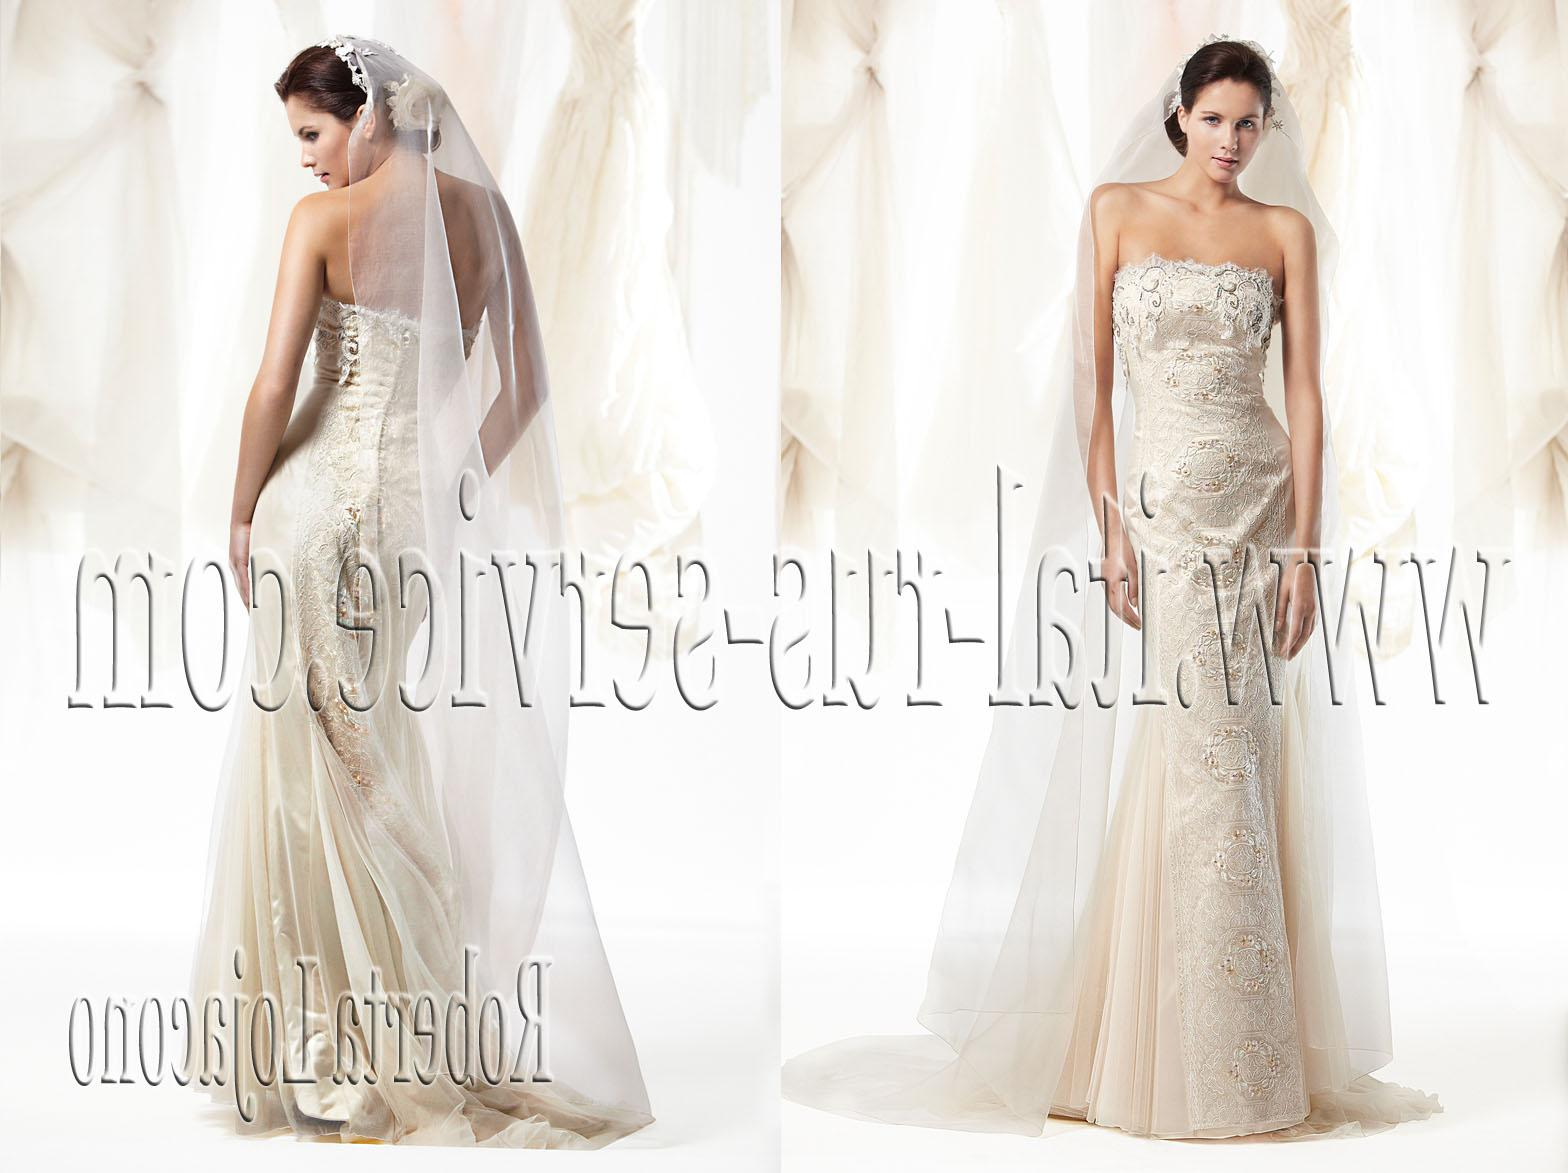 Tulle wedding dress with a